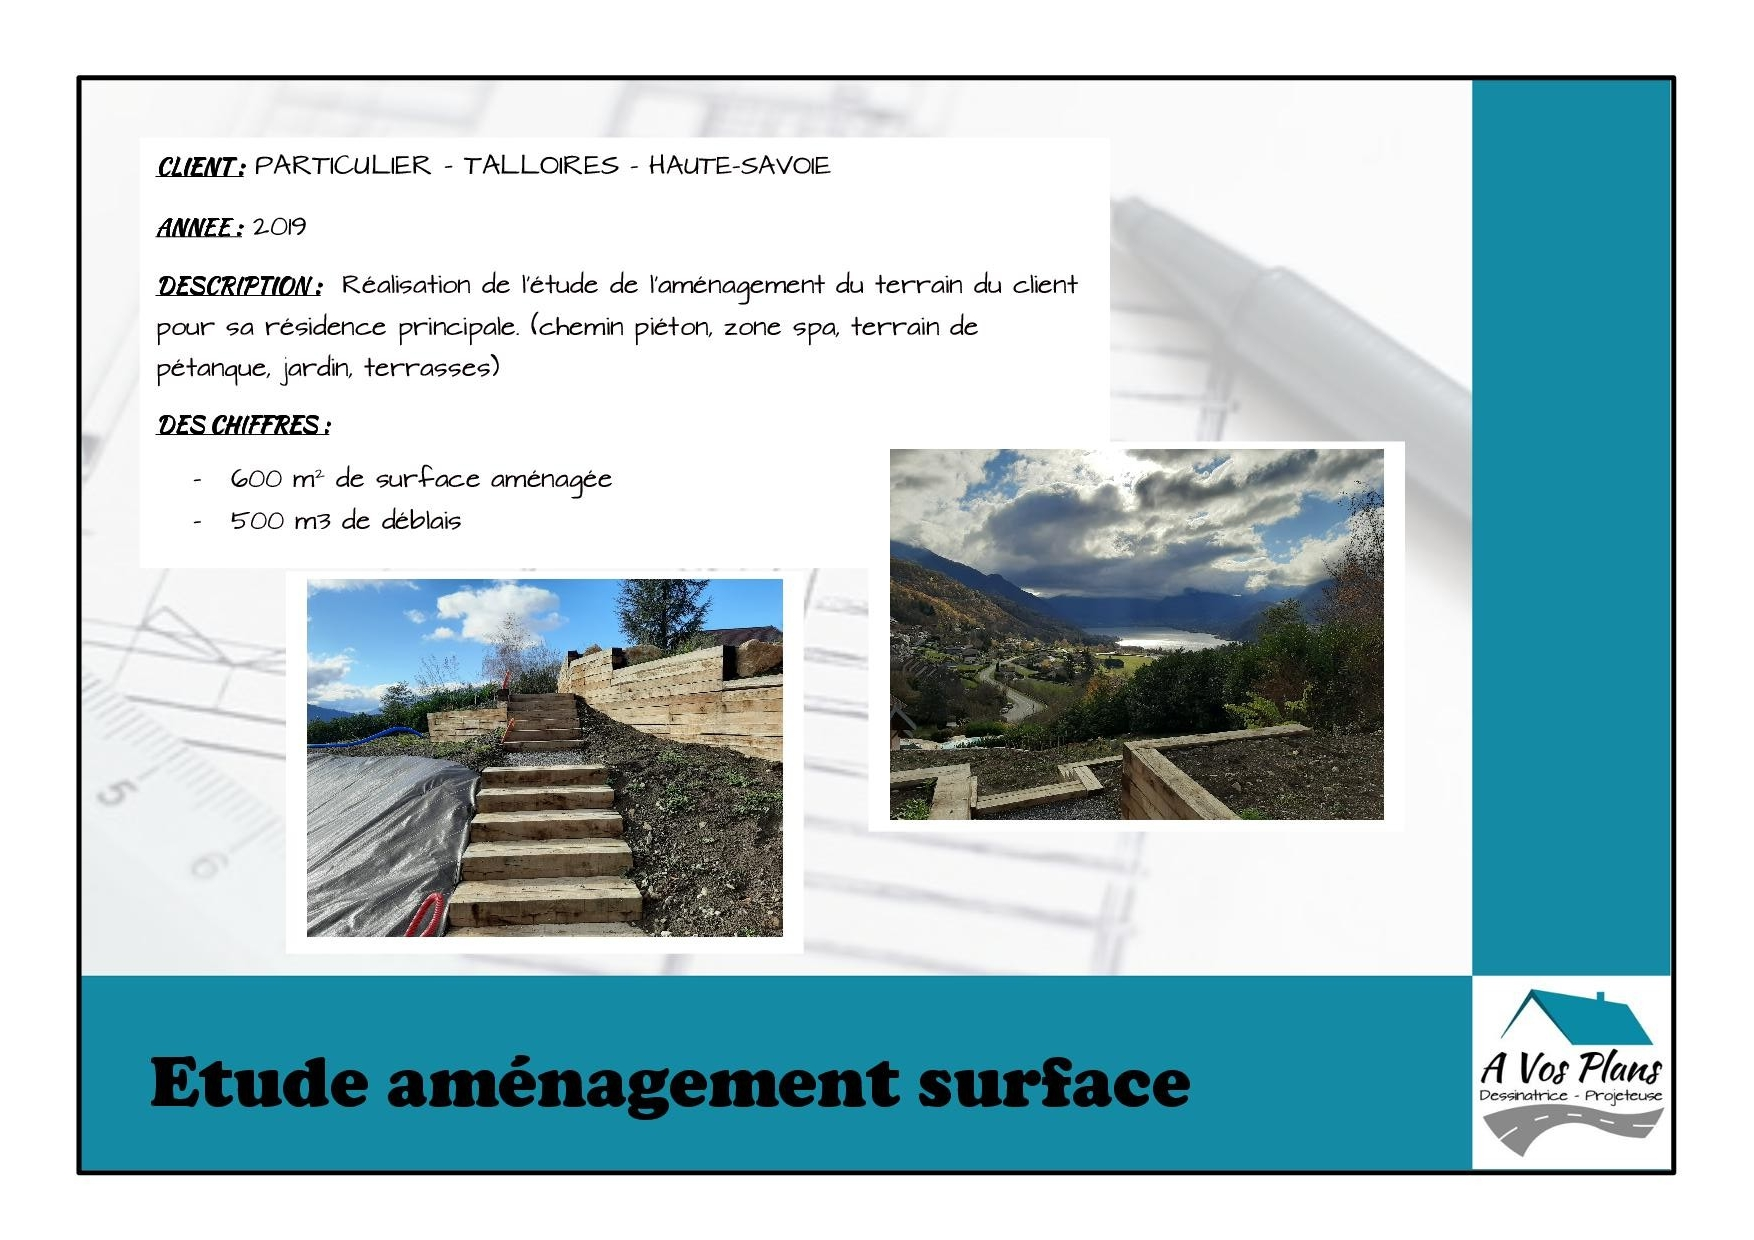 Ref 2019 PARTICULIER AMENAGEMENT TERRAIN